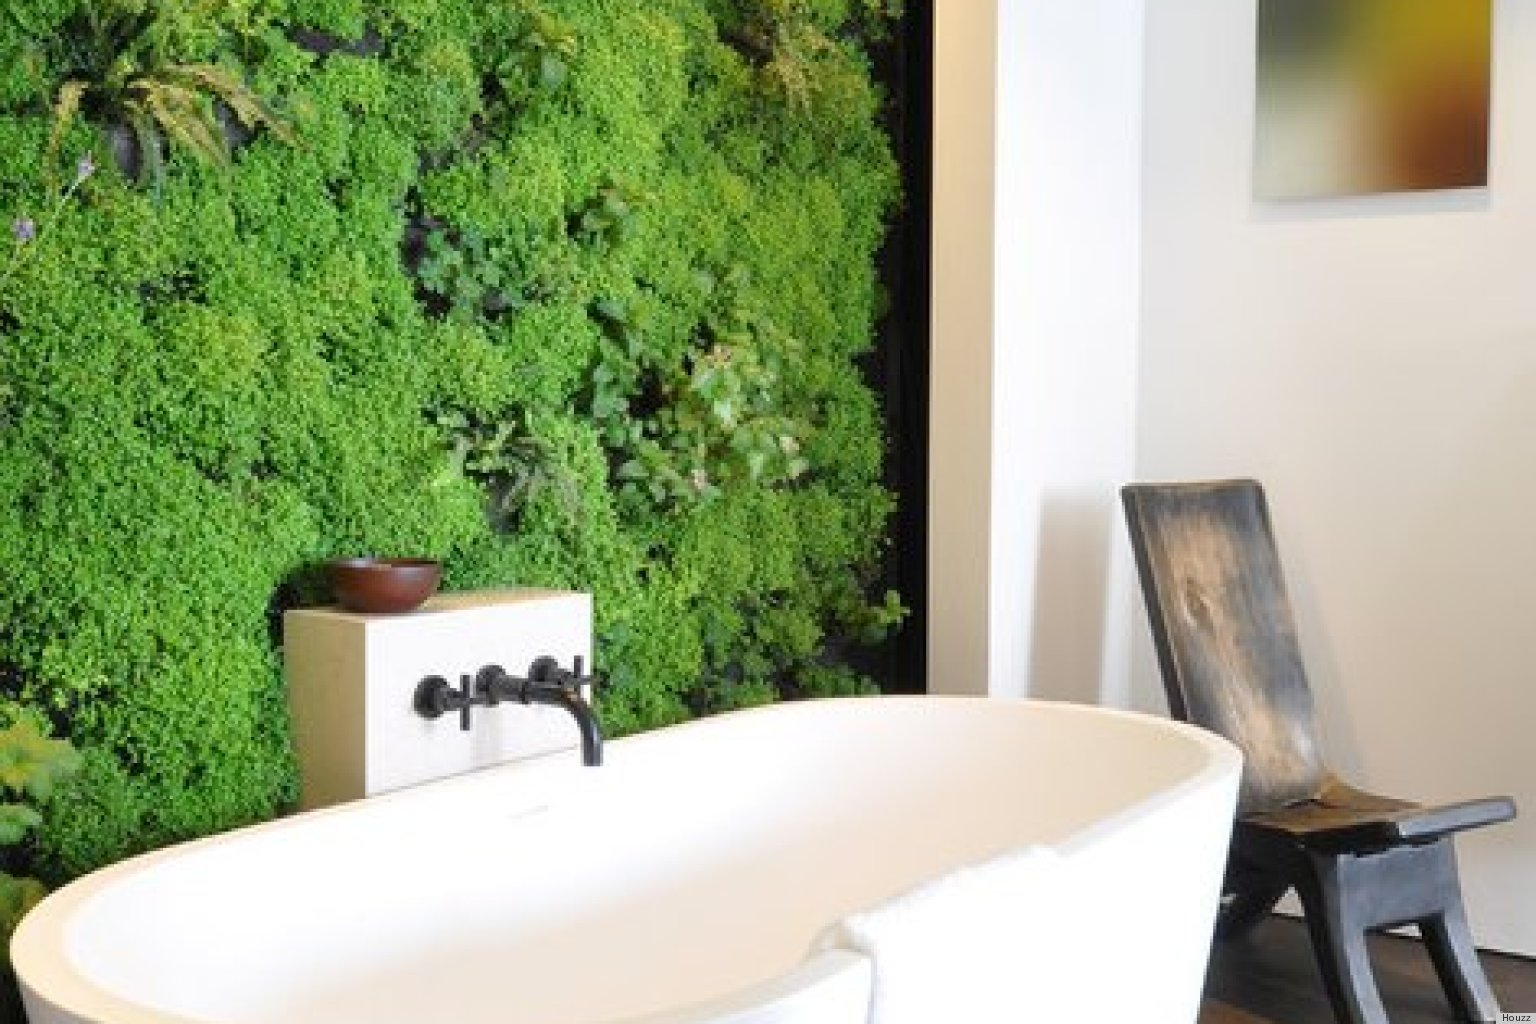 10 indoor vertical gardens that make potted plants look old school photos huffpost. Black Bedroom Furniture Sets. Home Design Ideas